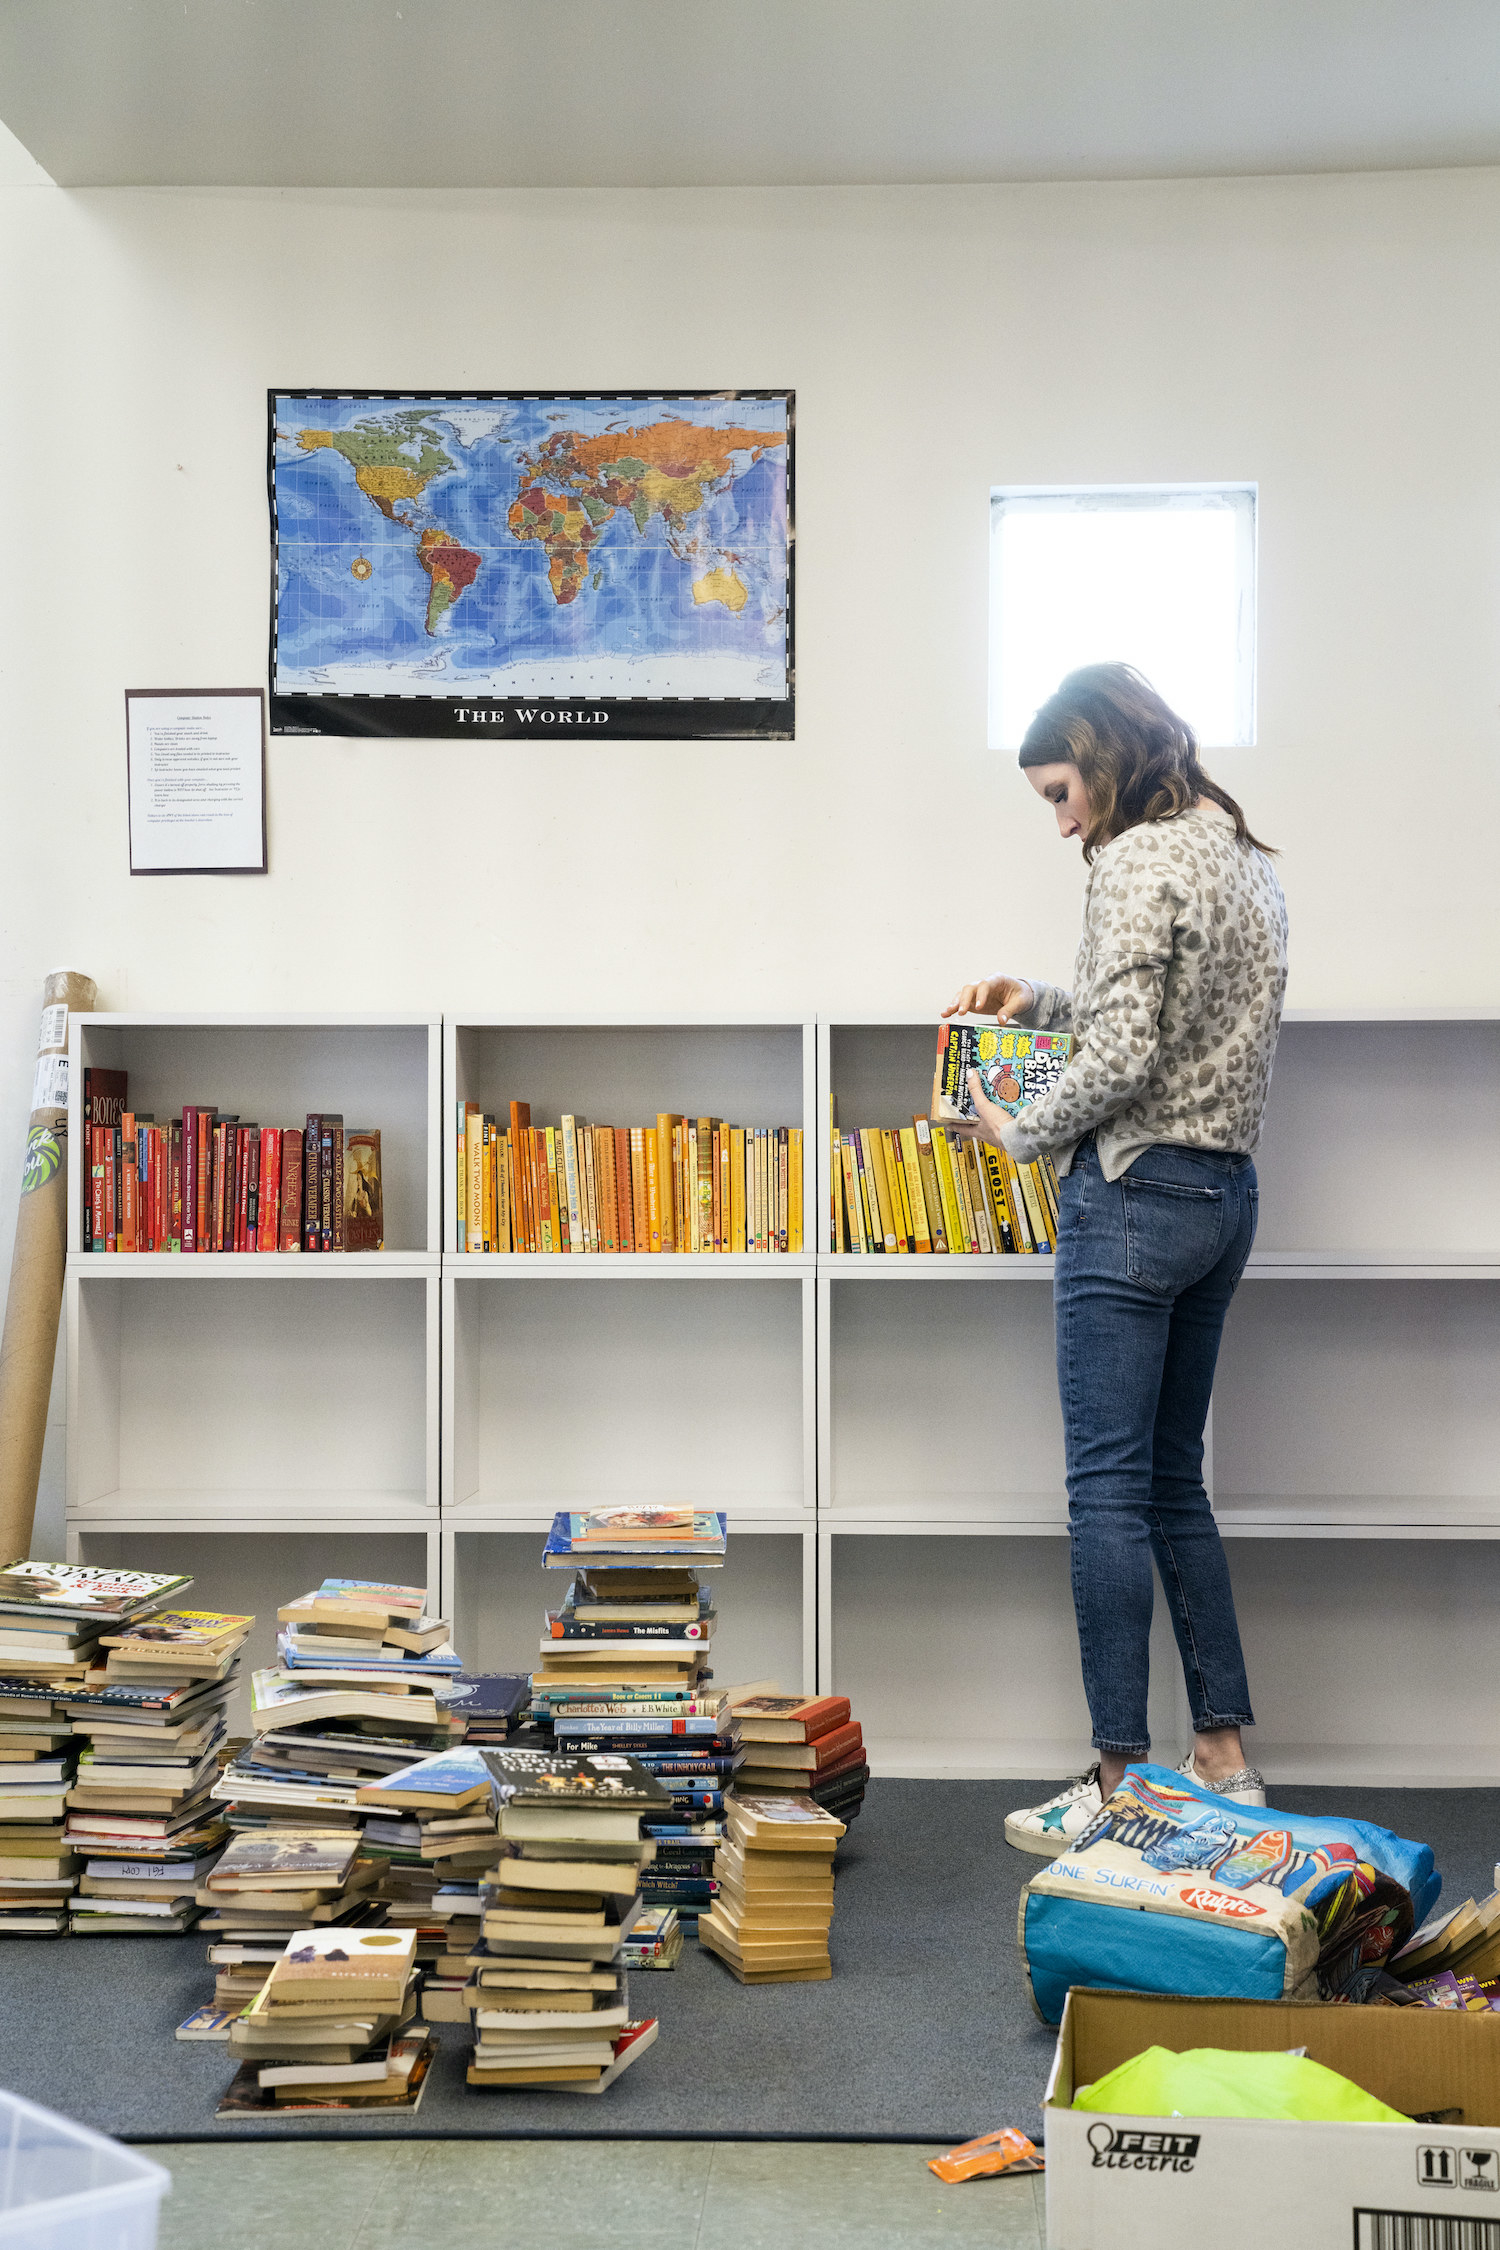 An organizer arranging books by color